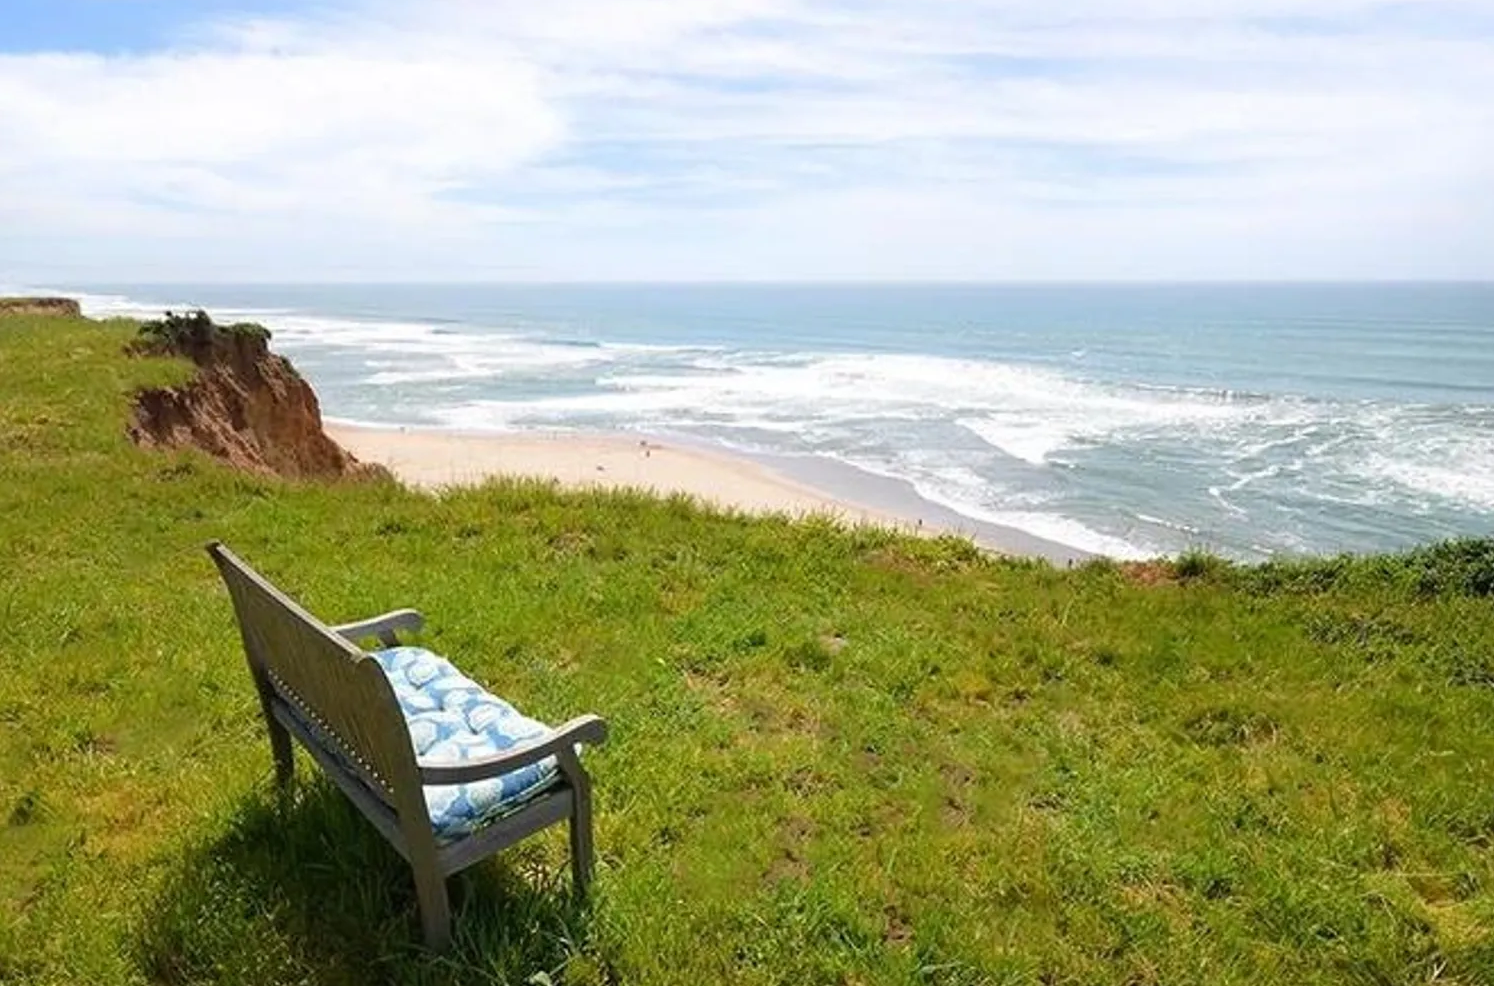 May contain: furniture, plant, grass, shoreline, water, chair, nature, sea, outdoors, ocean, coast, and beach